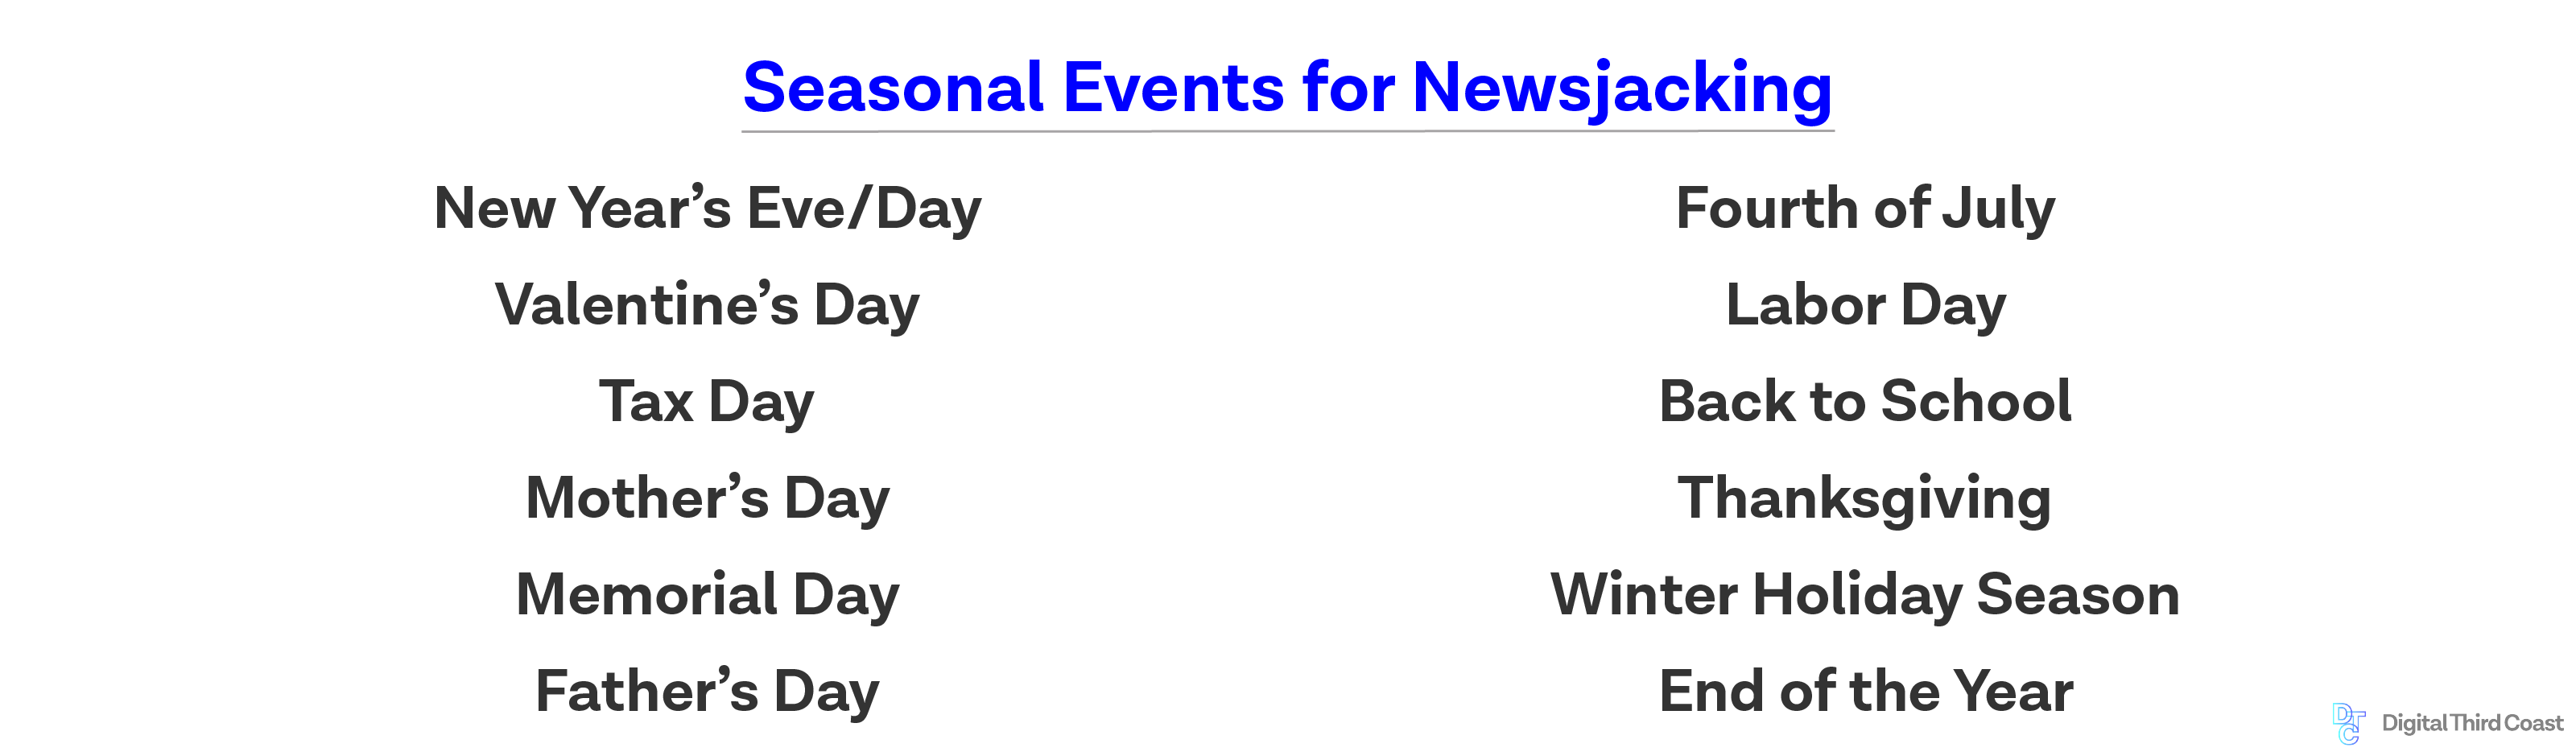 seasonal events for newsjacking including New Year's eve, valentine's day, tax day, memorial day, etc.